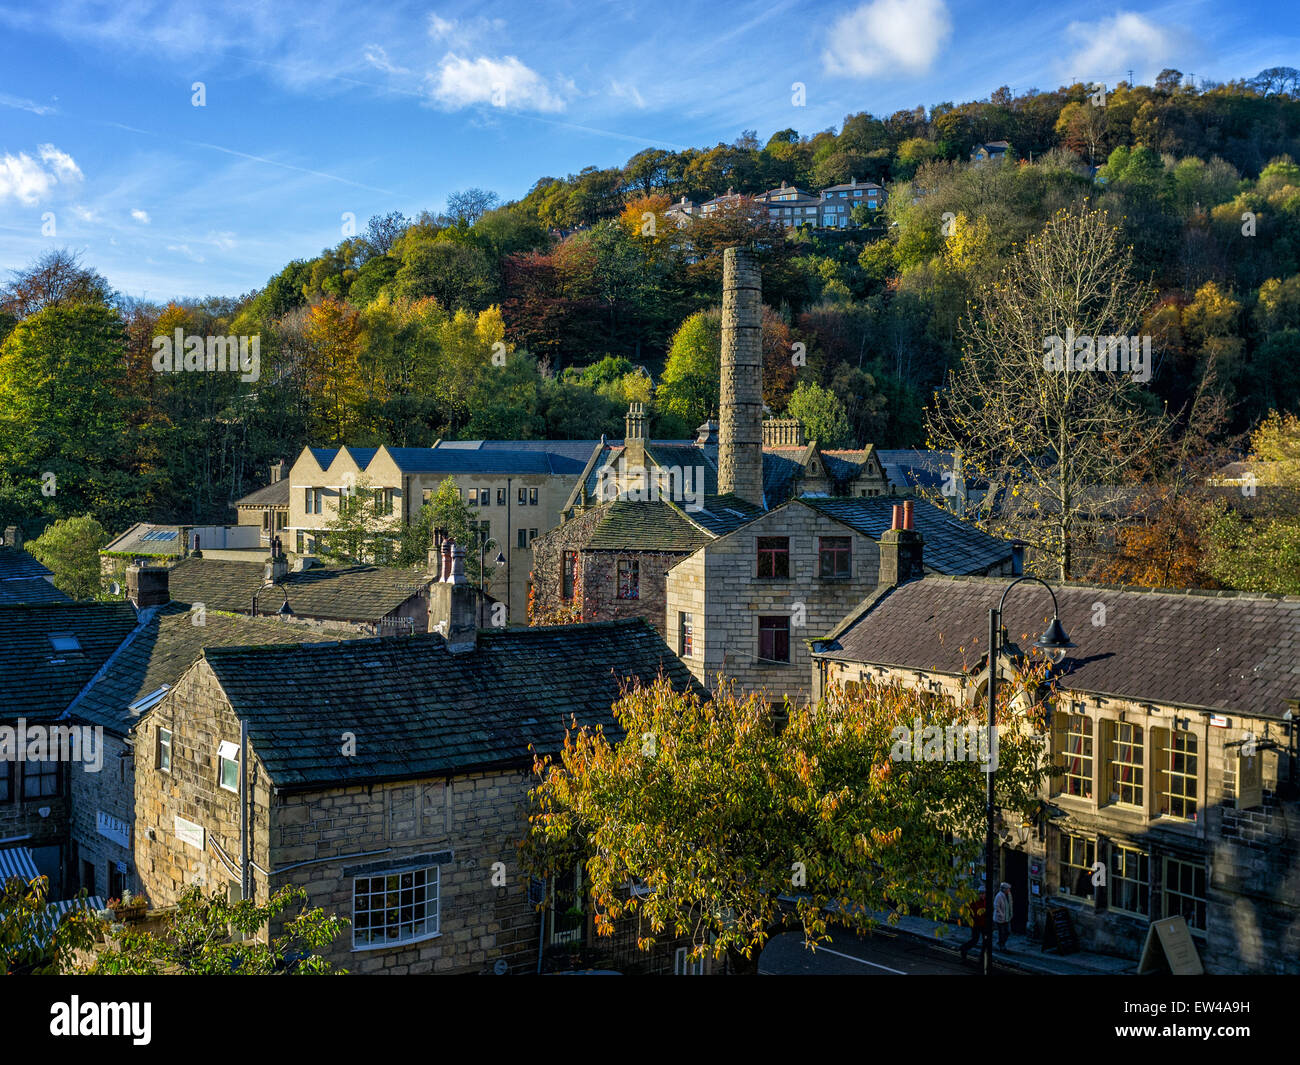 Autumn shot of the small market town of Hebden Bridge, in West Yorkshire, England. - Stock Image